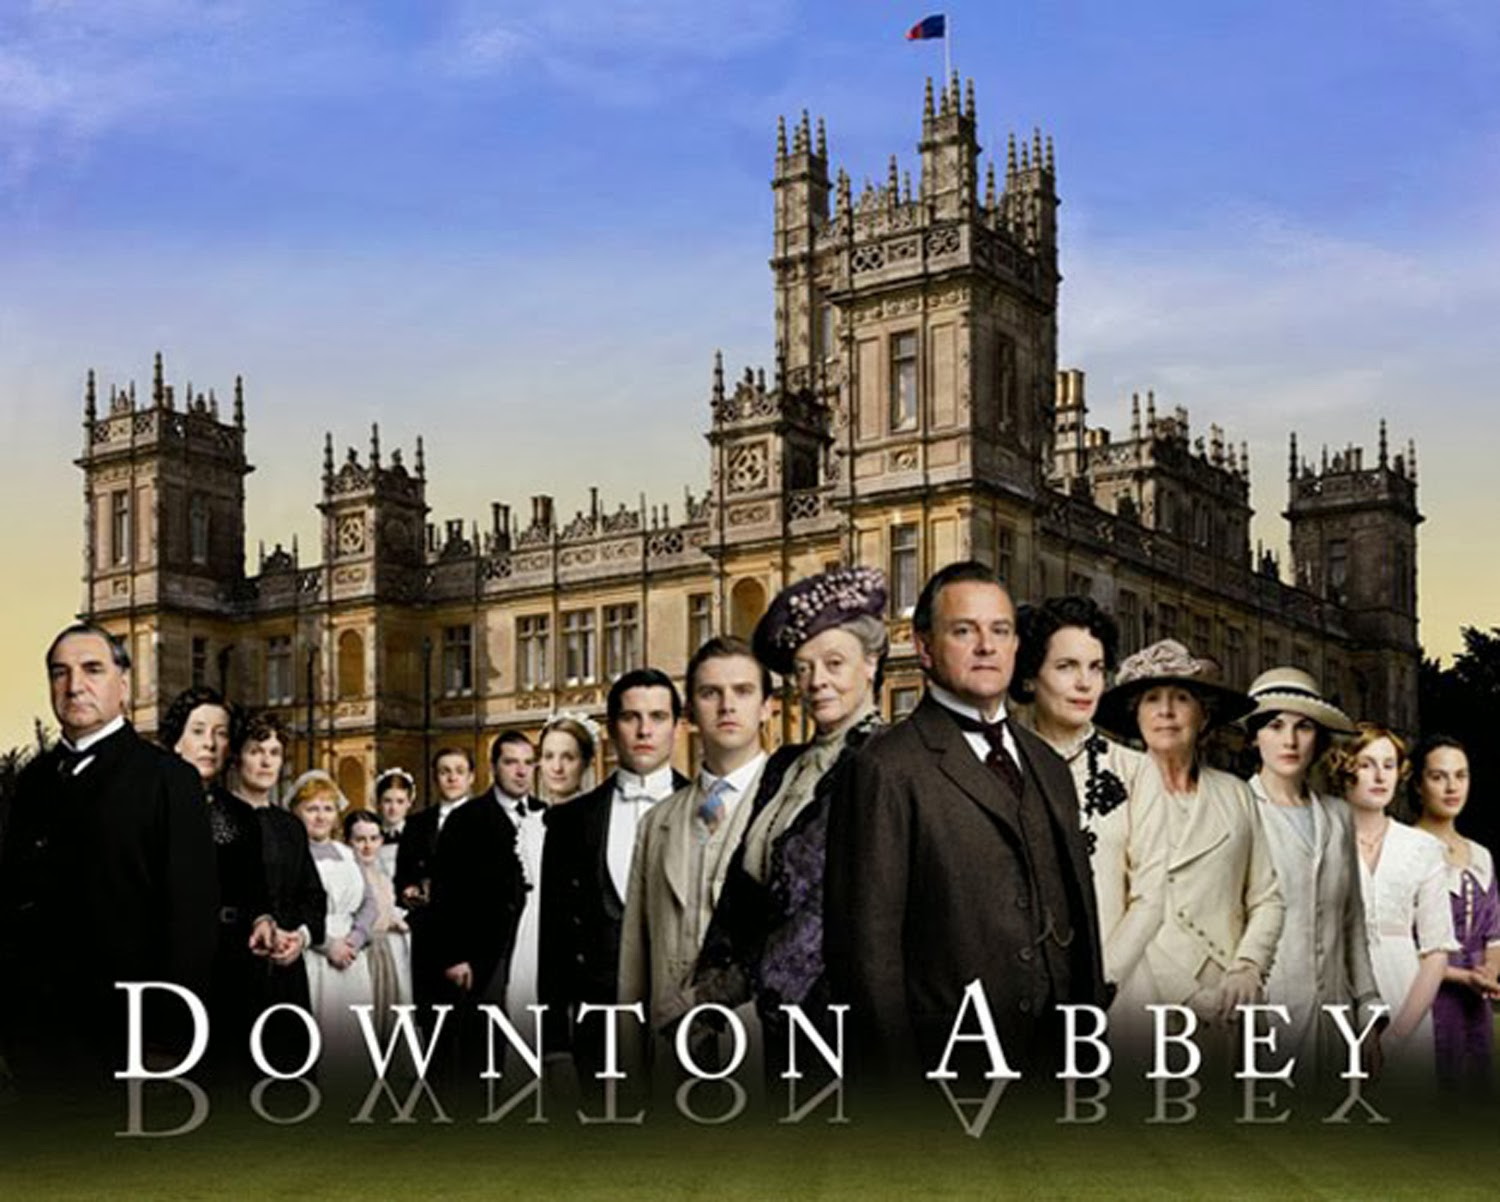 Downton Abbey hits ratings high for the season 4 finale